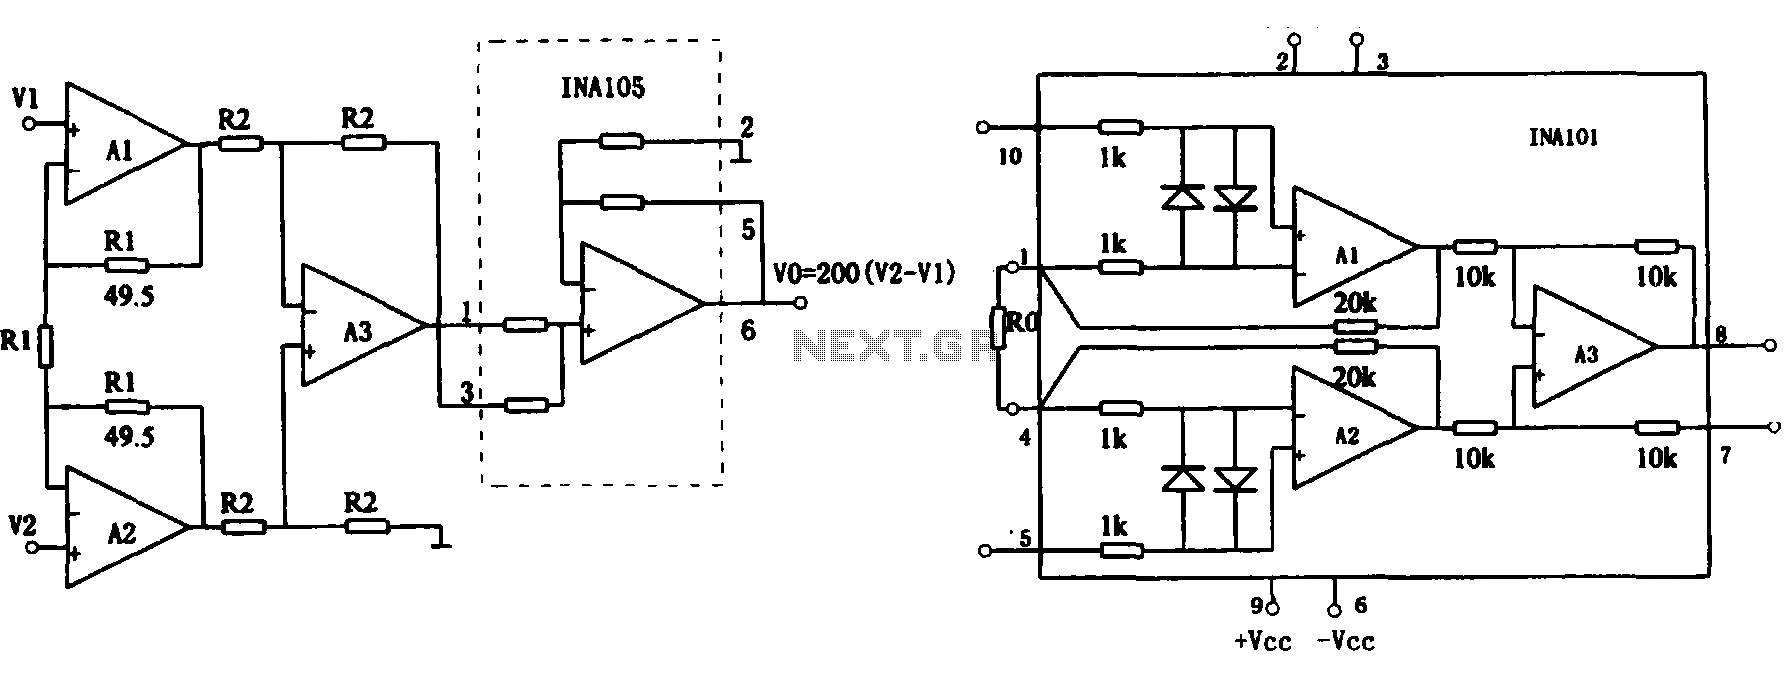 hight resolution of extended common mode range of the instrumentation amplifier ina101 circuit